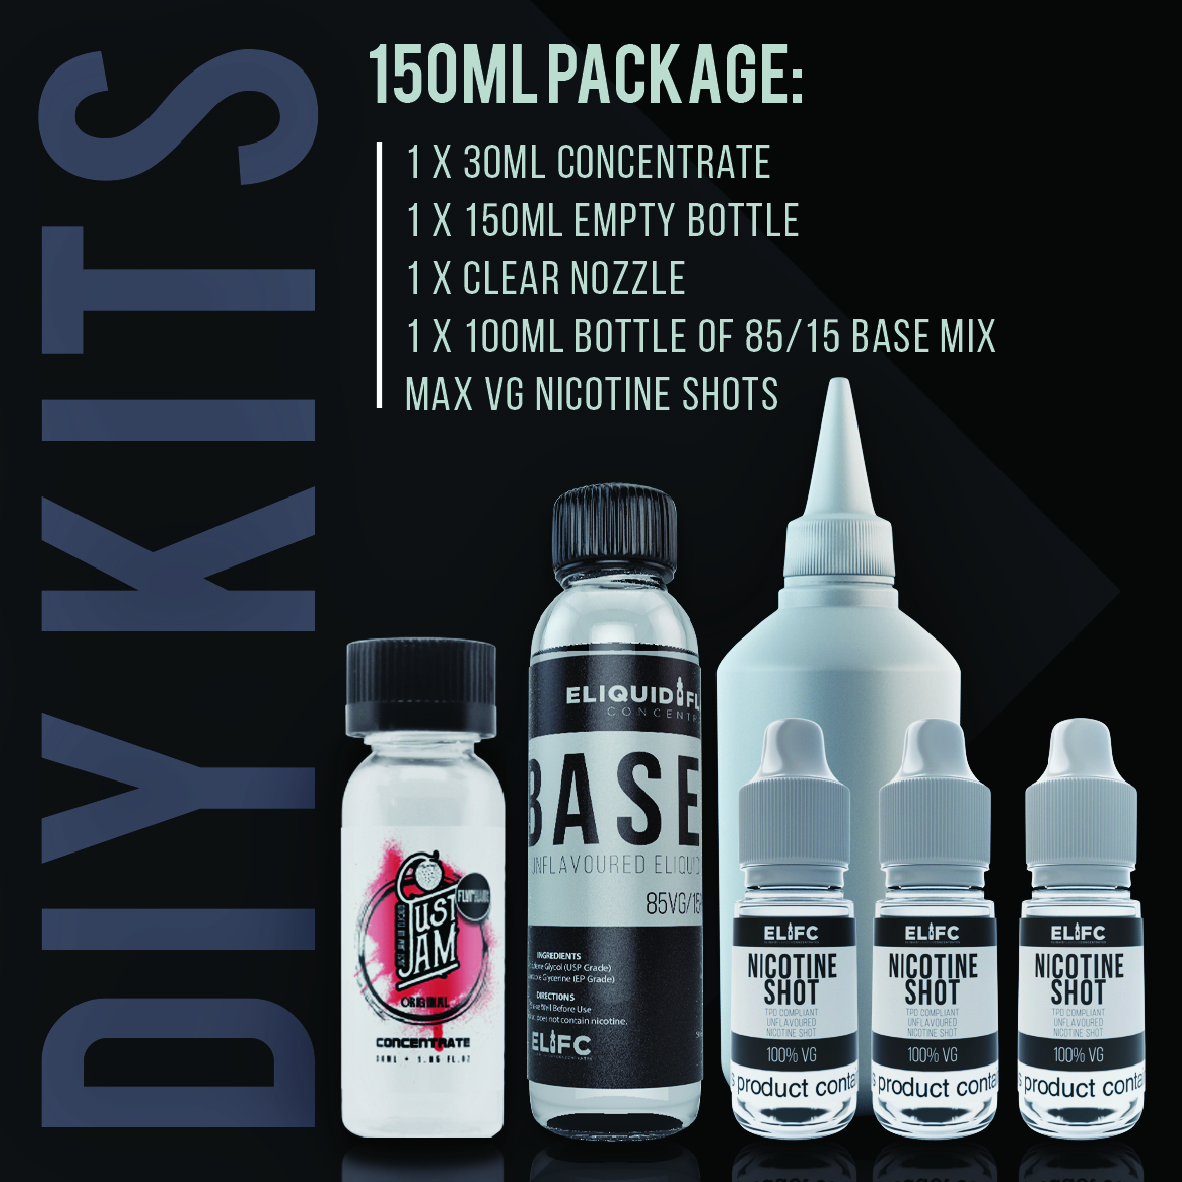 Just Jam DIY E Liquid Kit - 150ml